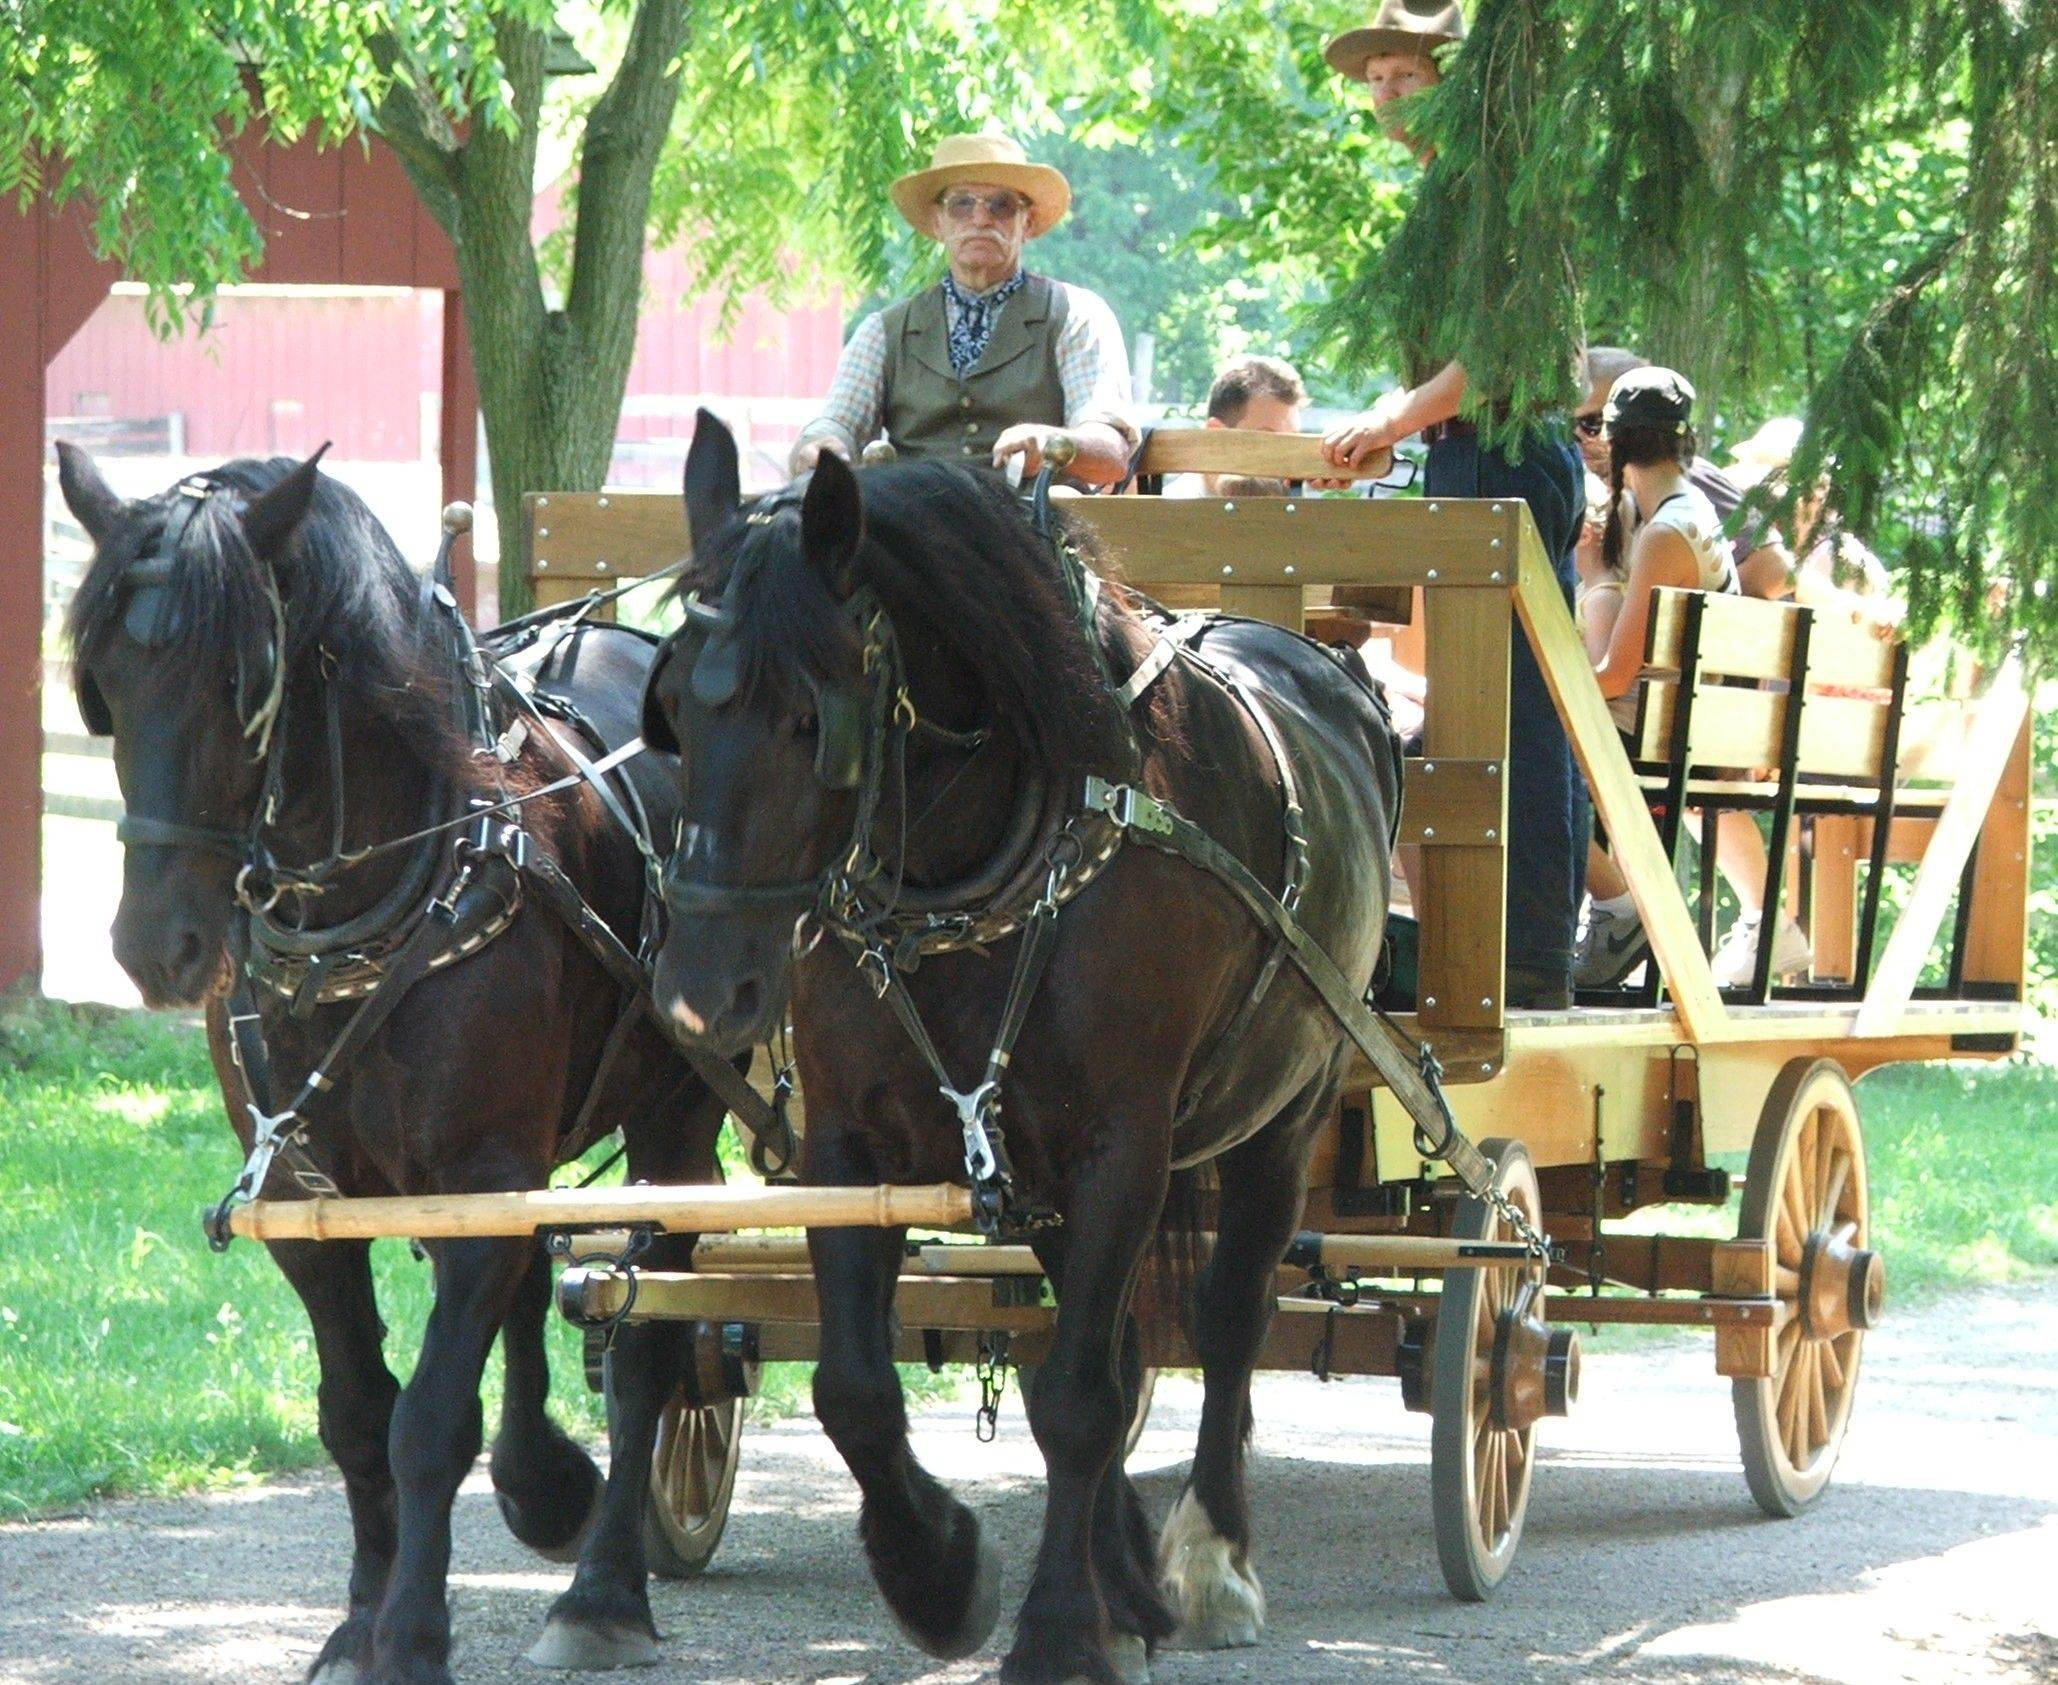 Chuck Henry drove the horse-drawn wagon at Heritage Farm in Schaumburg but also worked out the horses to keep them in shape.